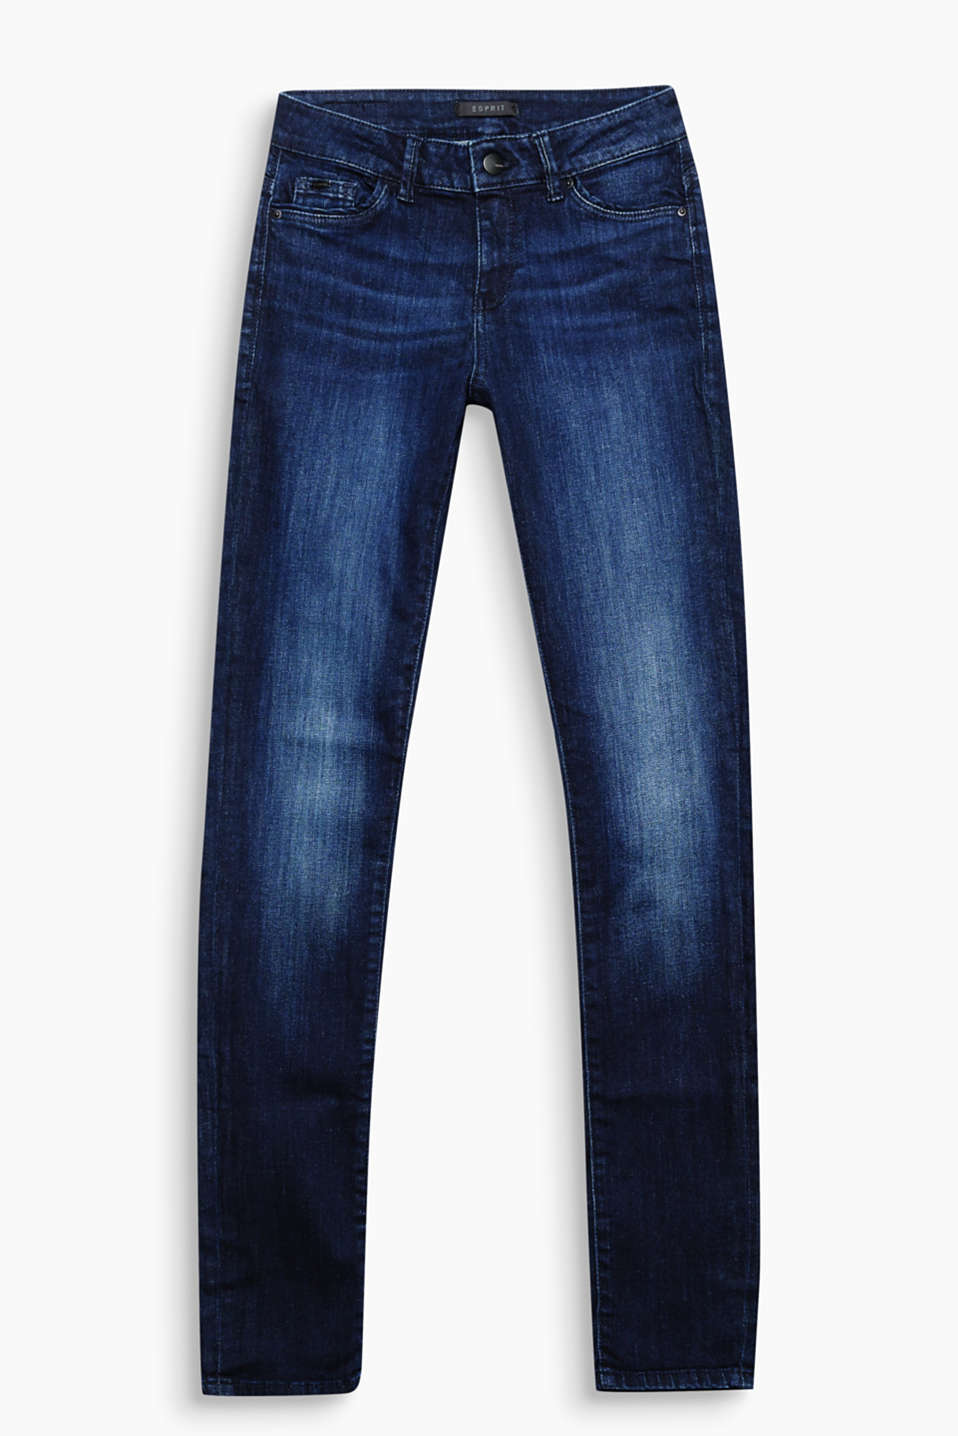 Dark denim jeans in a piped five-pocket design with a high percentage of stretch